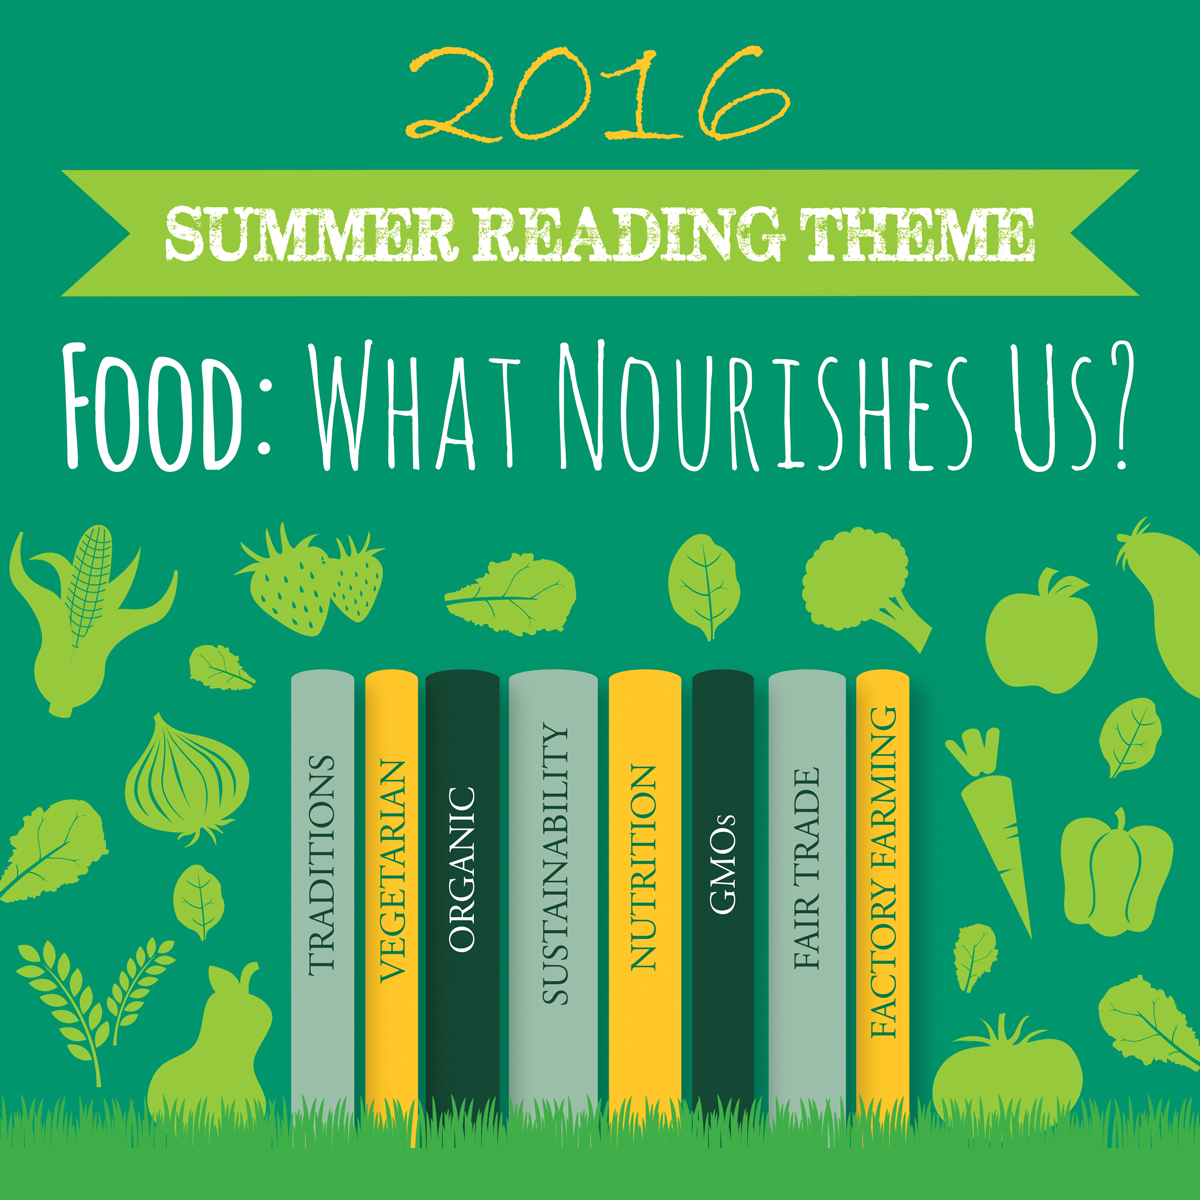 2016 Summer Reading Theme: Food: What Nourishes Us?